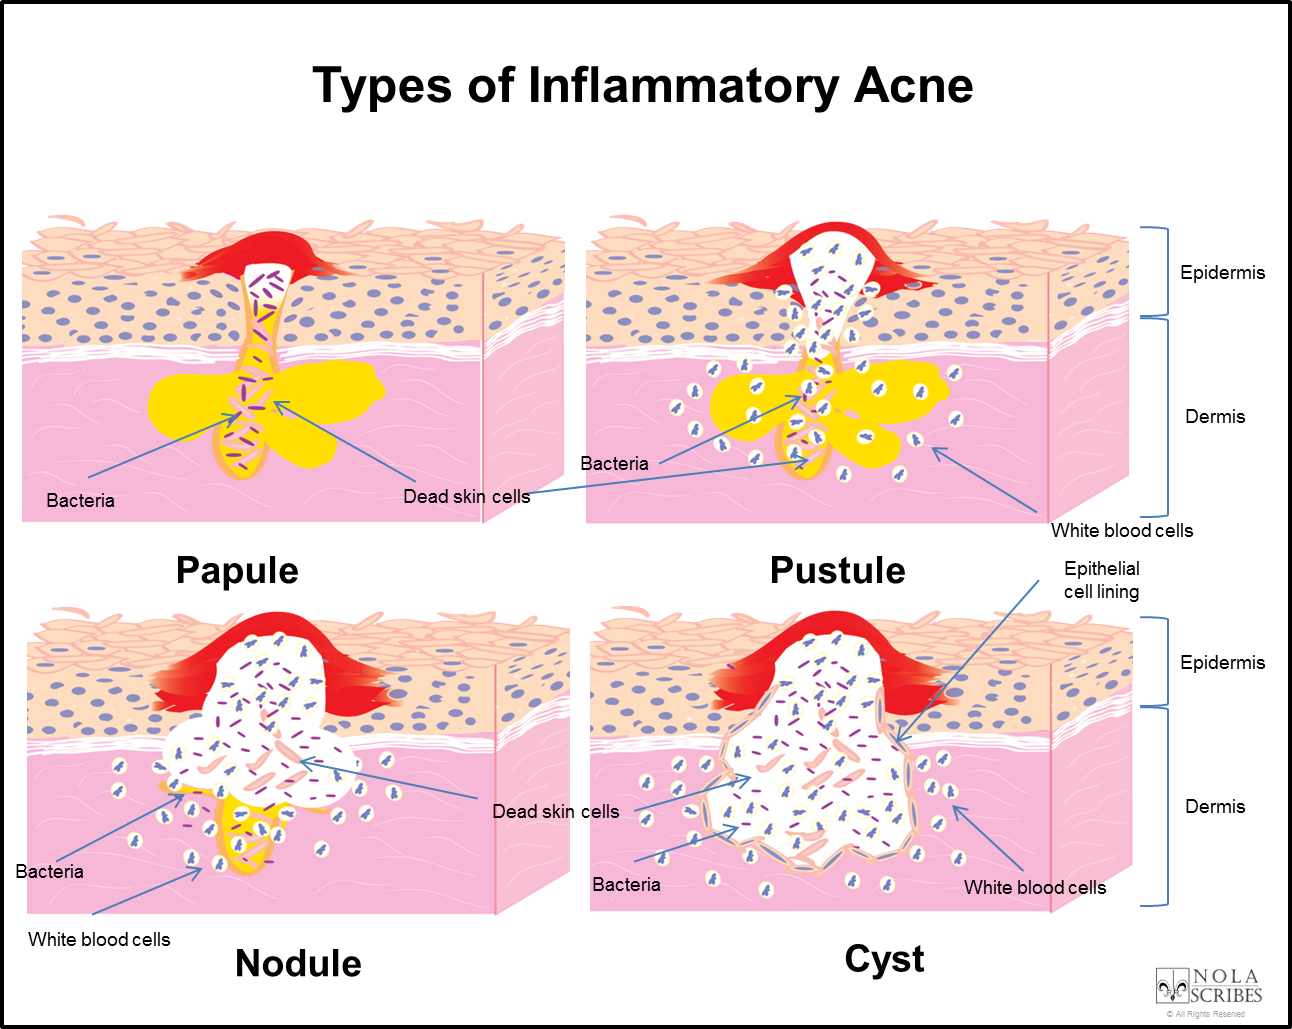 cystic acne diagram health, medicine and anatomy reference papule pimple how to treat cystic acne at home